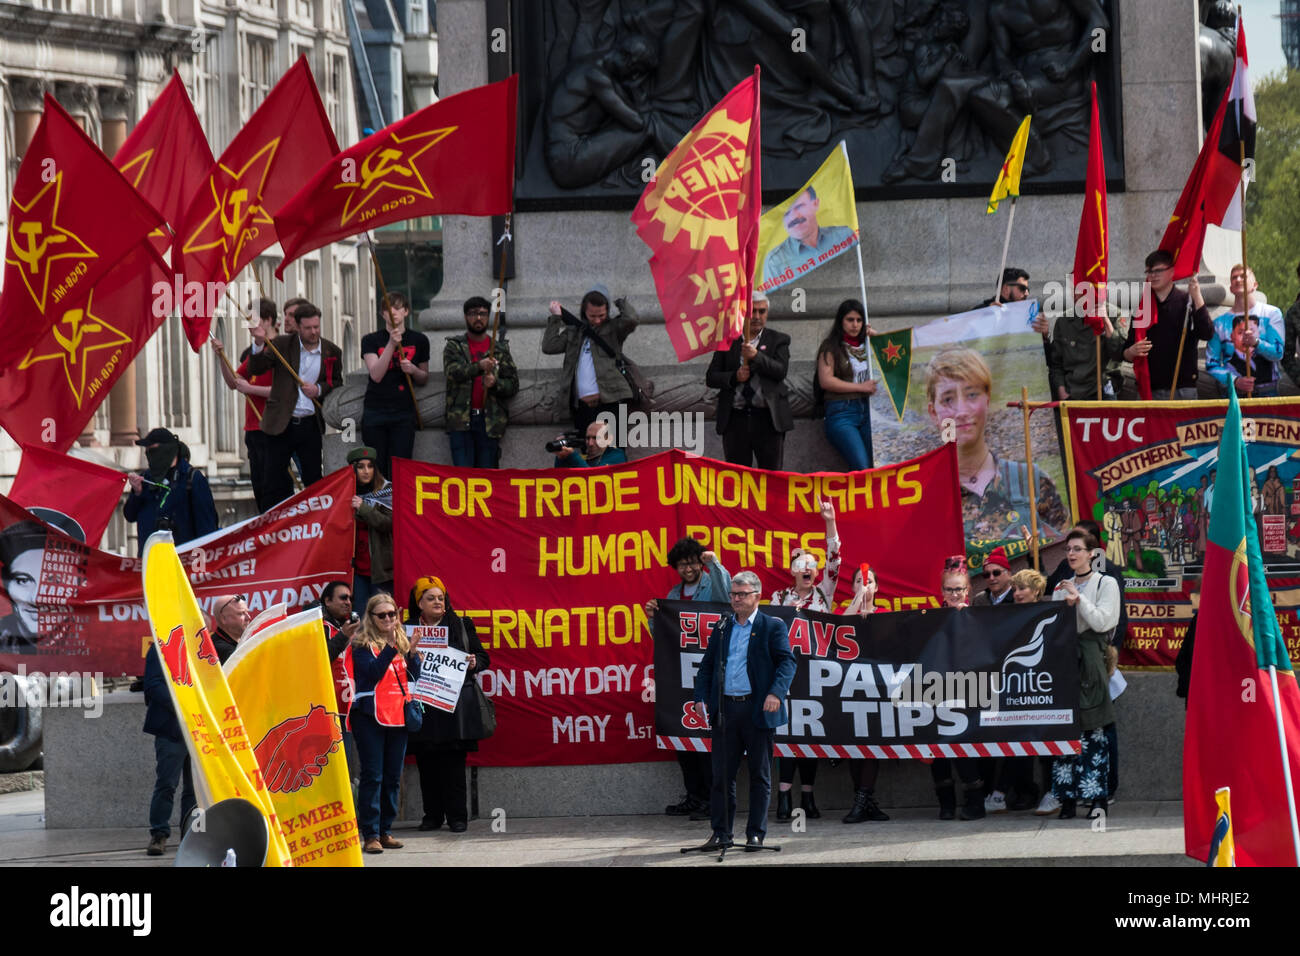 May 1, 2018 - London, UK. 1st May 2018. Mick Cash RMT General ...